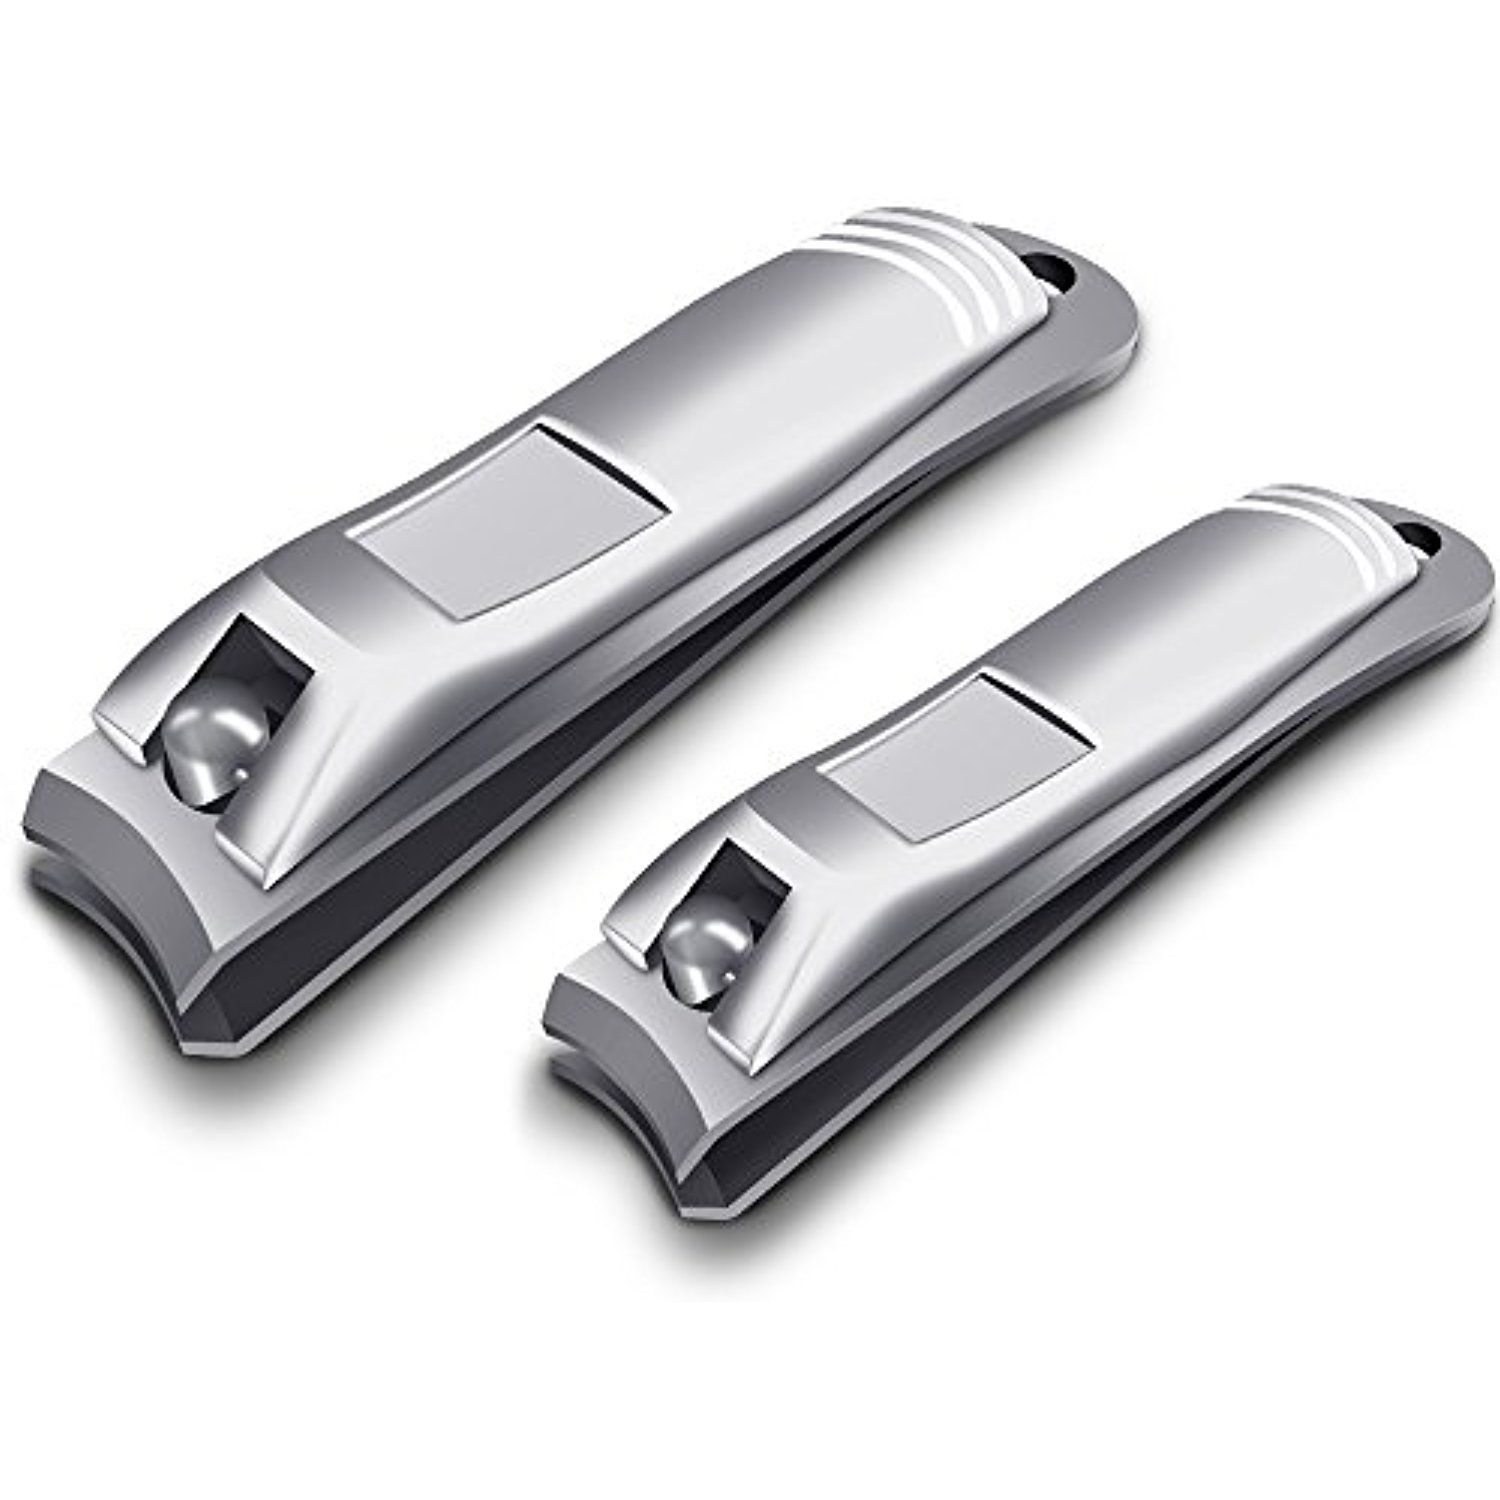 Chimocee Nail Clippers 2pcs Professional Sharpest Stainless Steel Fingernail And Toenail Heavy Duty Set For Men